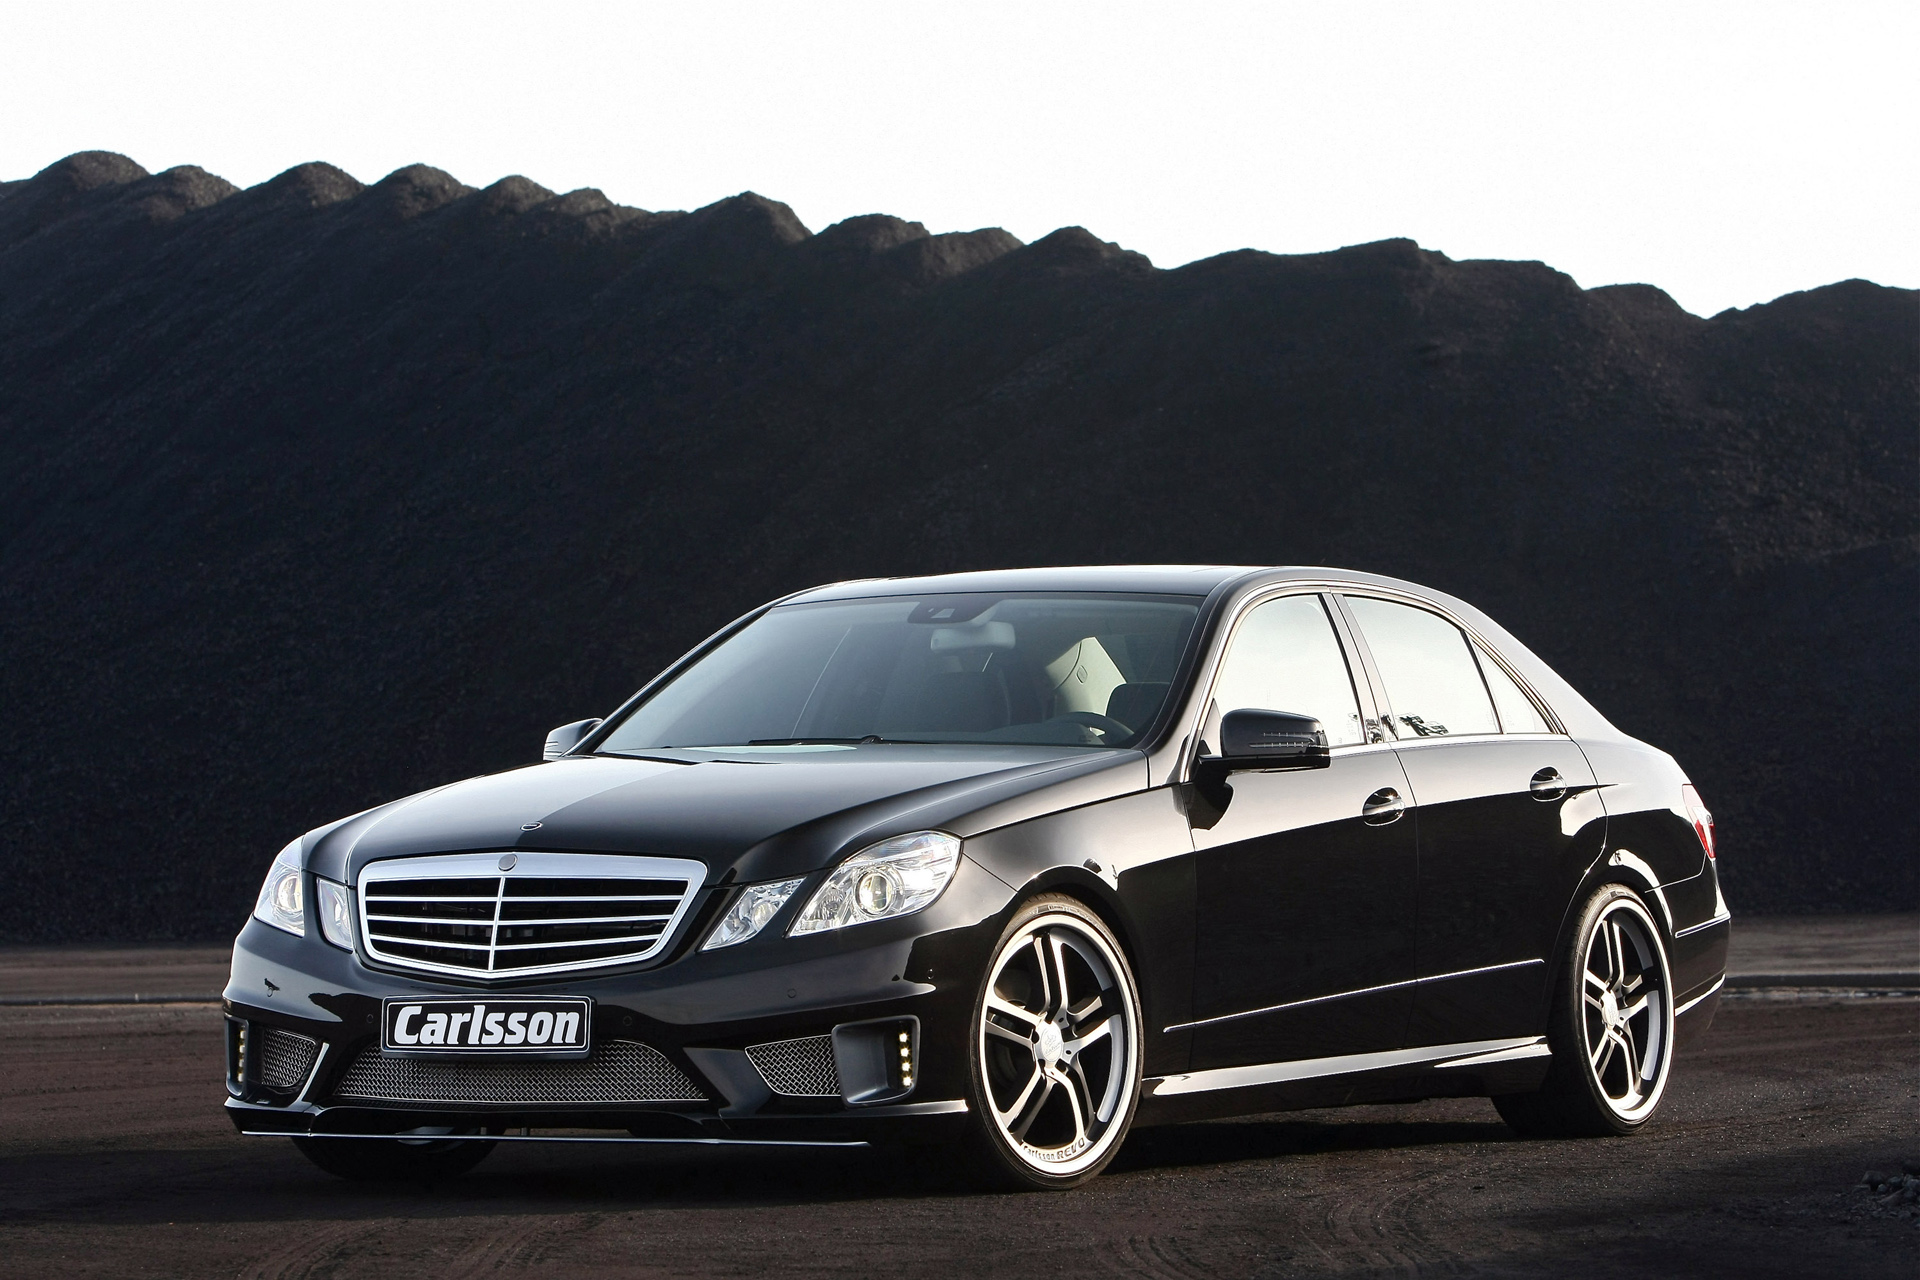 Carlsson E-CK63 RS photo 68815